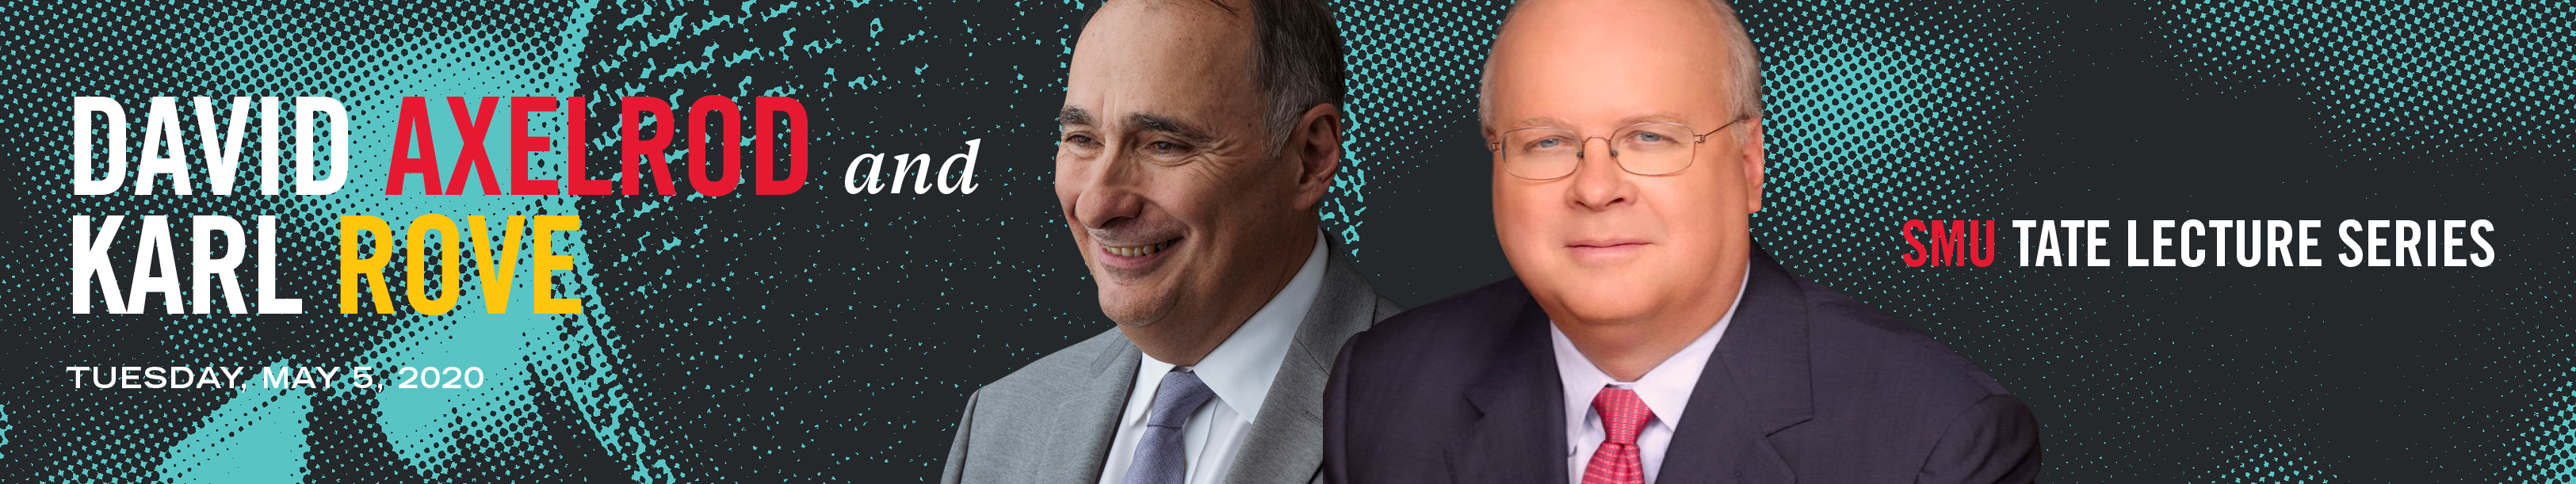 David Axelrod and Karl Rove